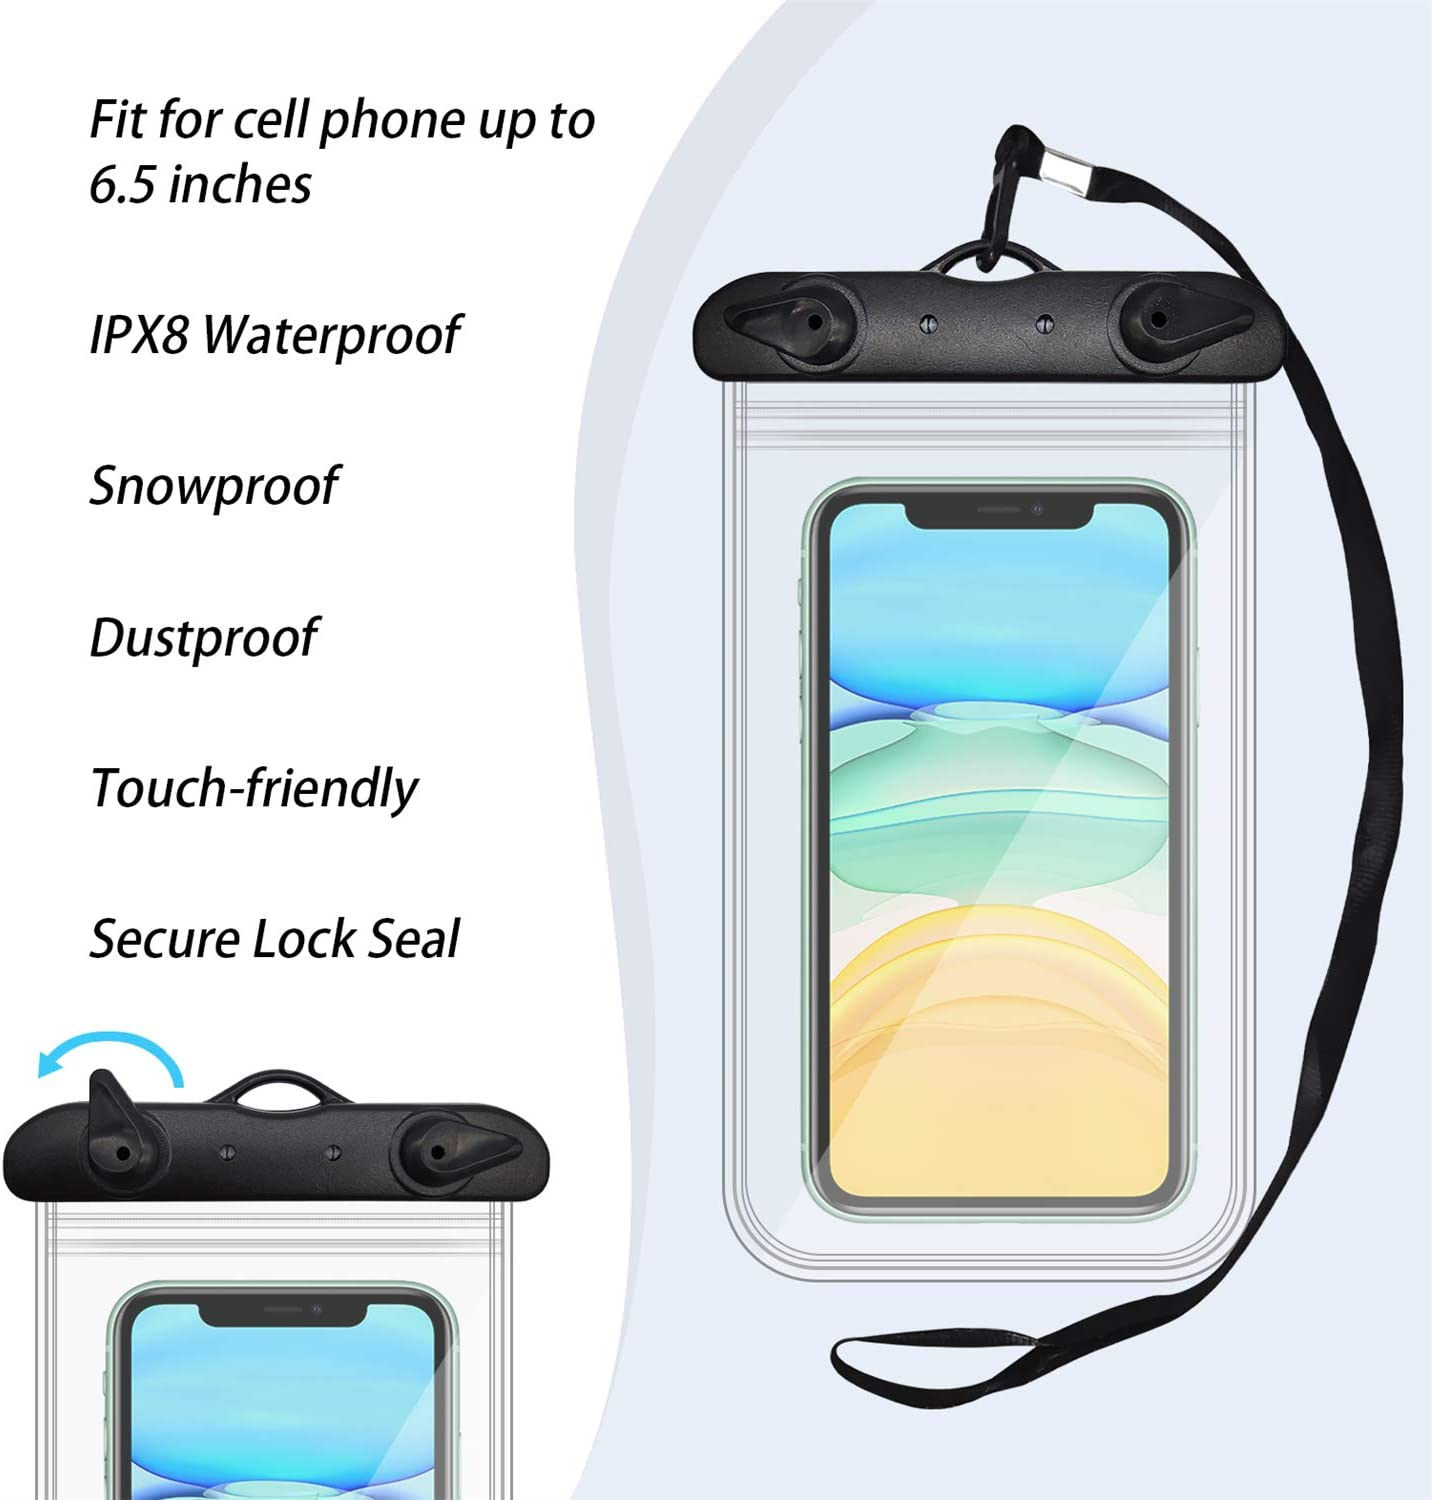 JJQHYC Waterproof Pouch Bag Underwater Touchable Phone Dry Bag for Fishing//Beach Holiday Keep Valuables Safe and Dry